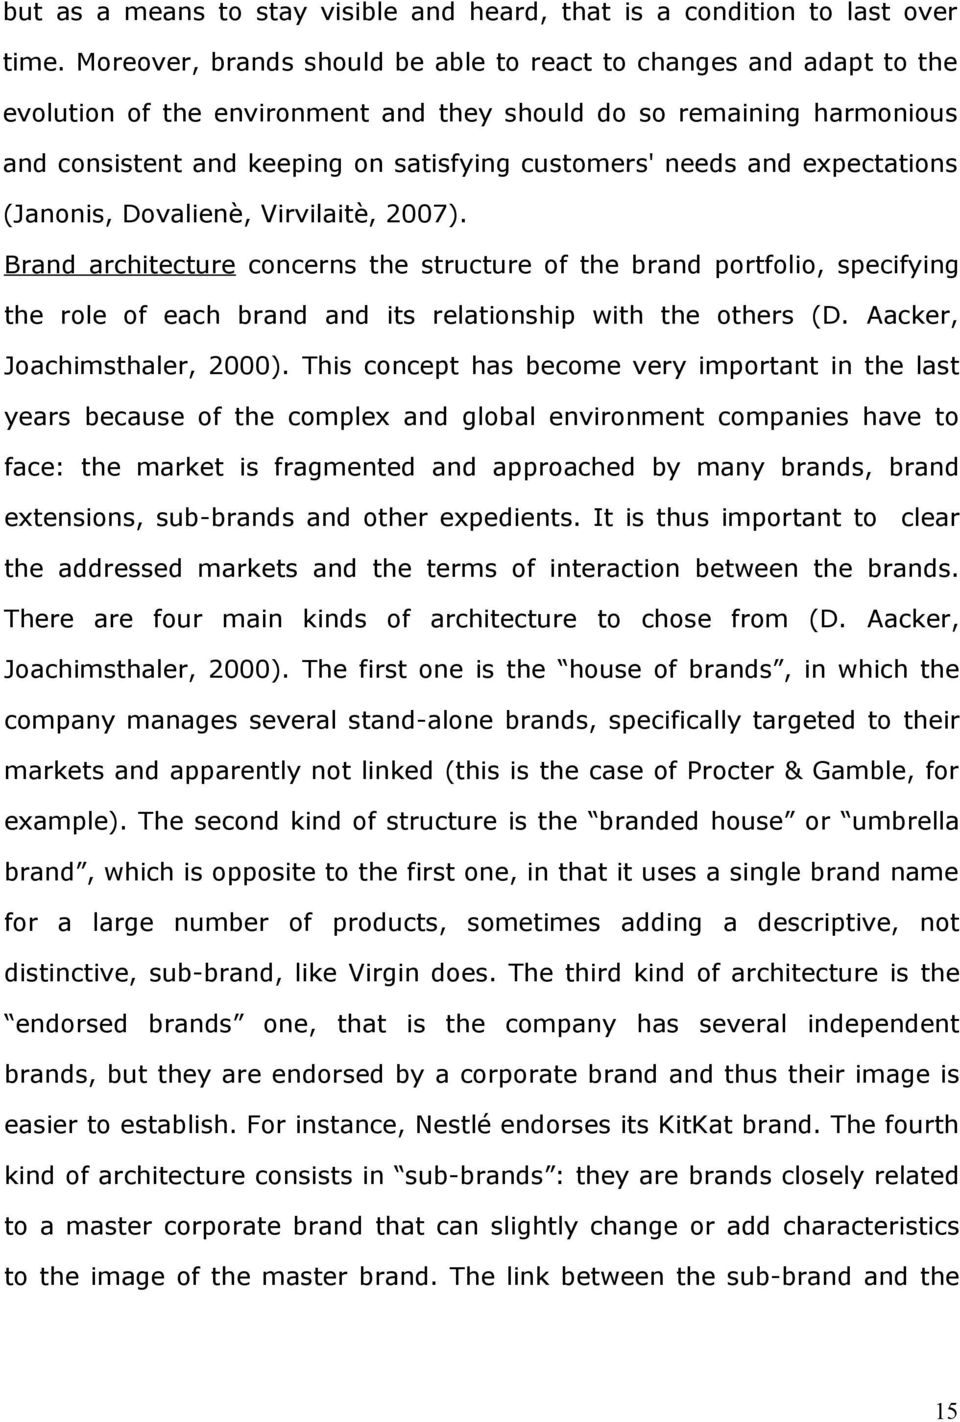 and expectations (Janonis, Dovalienè, Virvilaitè, 2007). Brand architecture concerns the structure of the brand portfolio, specifying the role of each brand and its relationship with the others (D.